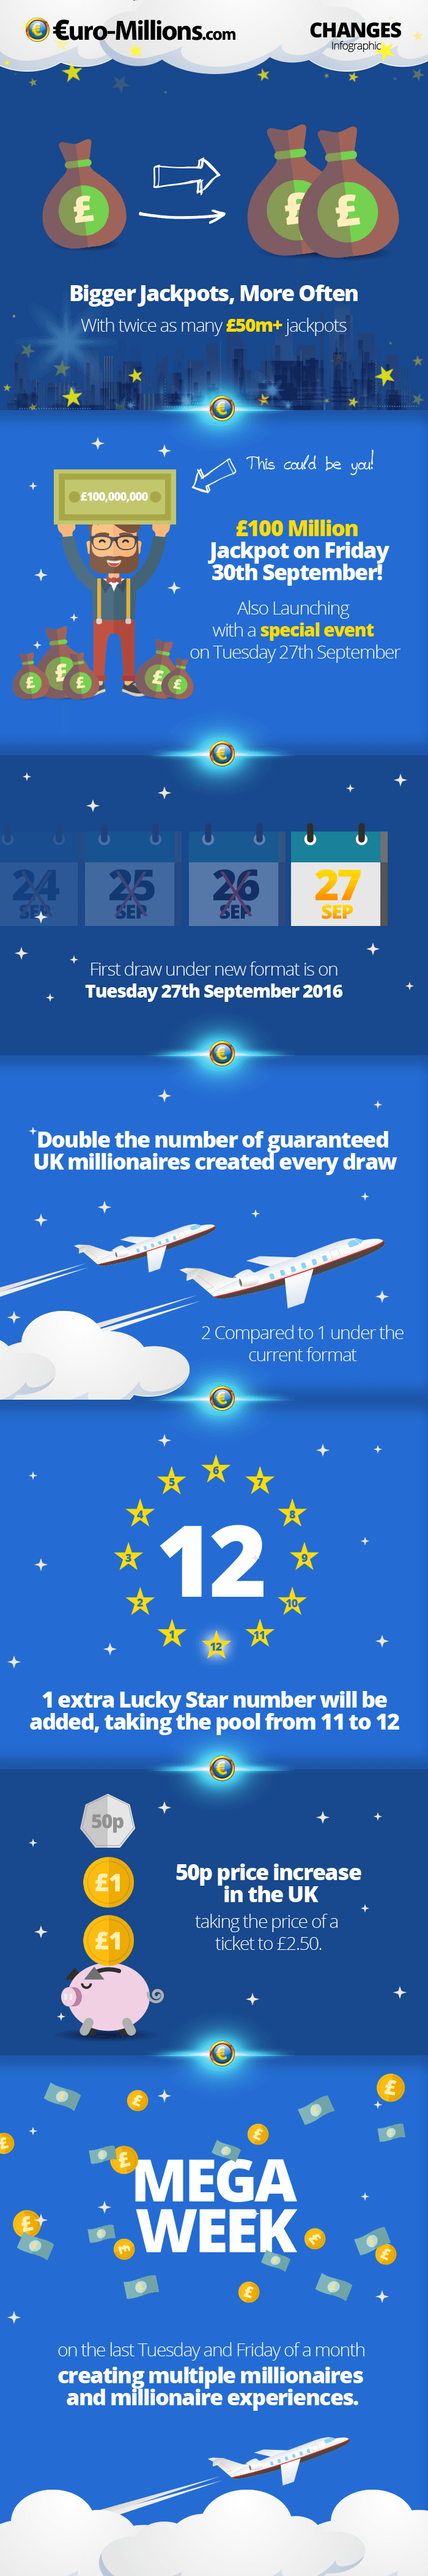 2016 EuroMillions Changes Infographic